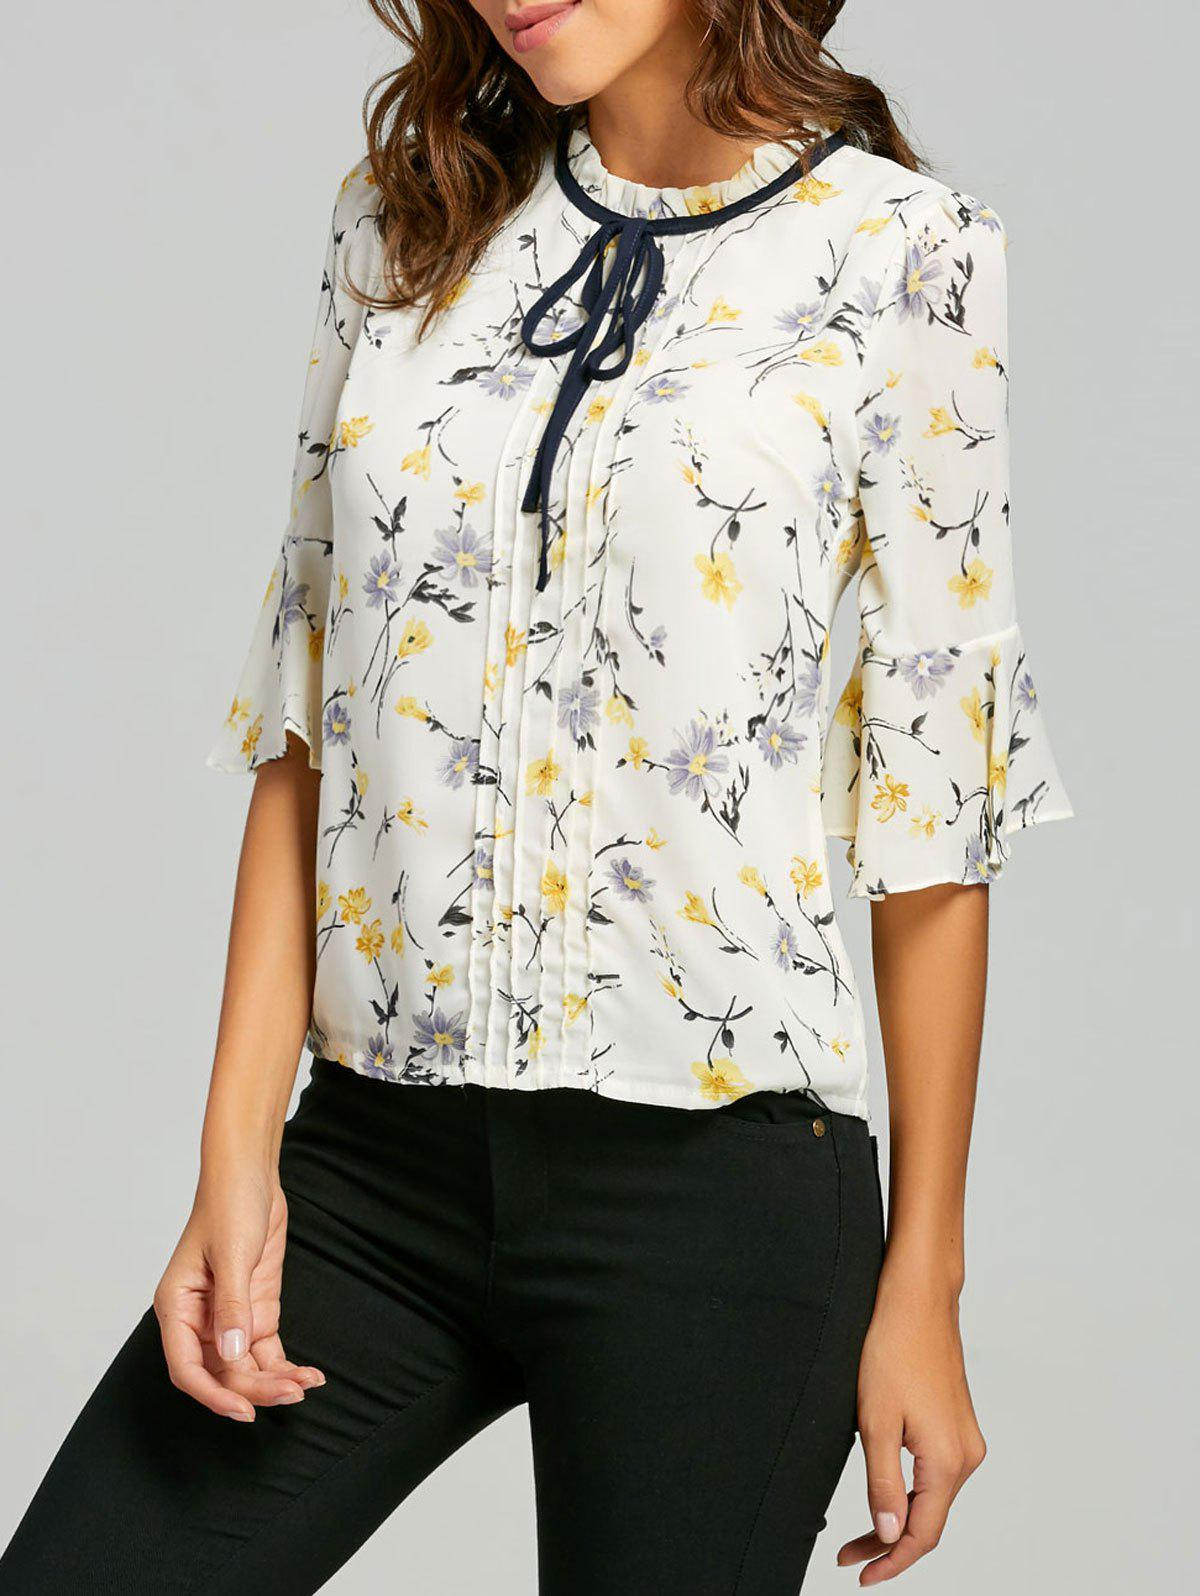 Ruffle Neck Floral Blouse - YELLOW M